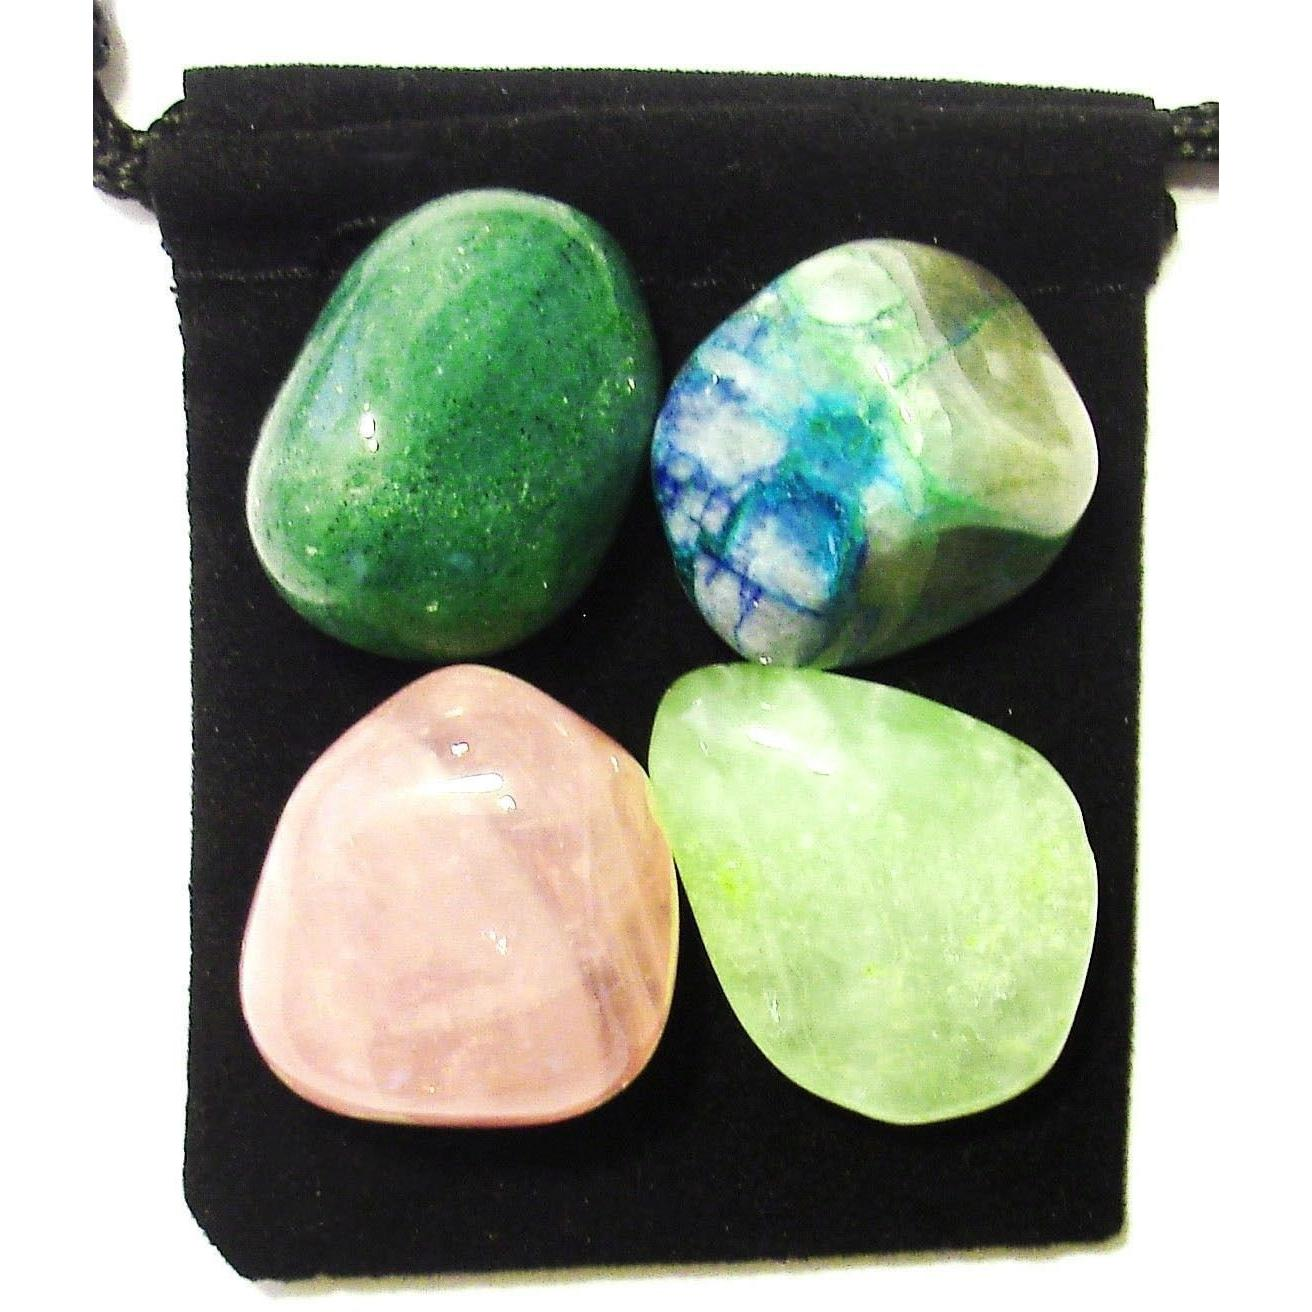 Pouch BLOOD VESSEL REPAIR Tumbled Crystal Healing Set = 4 Stones Card